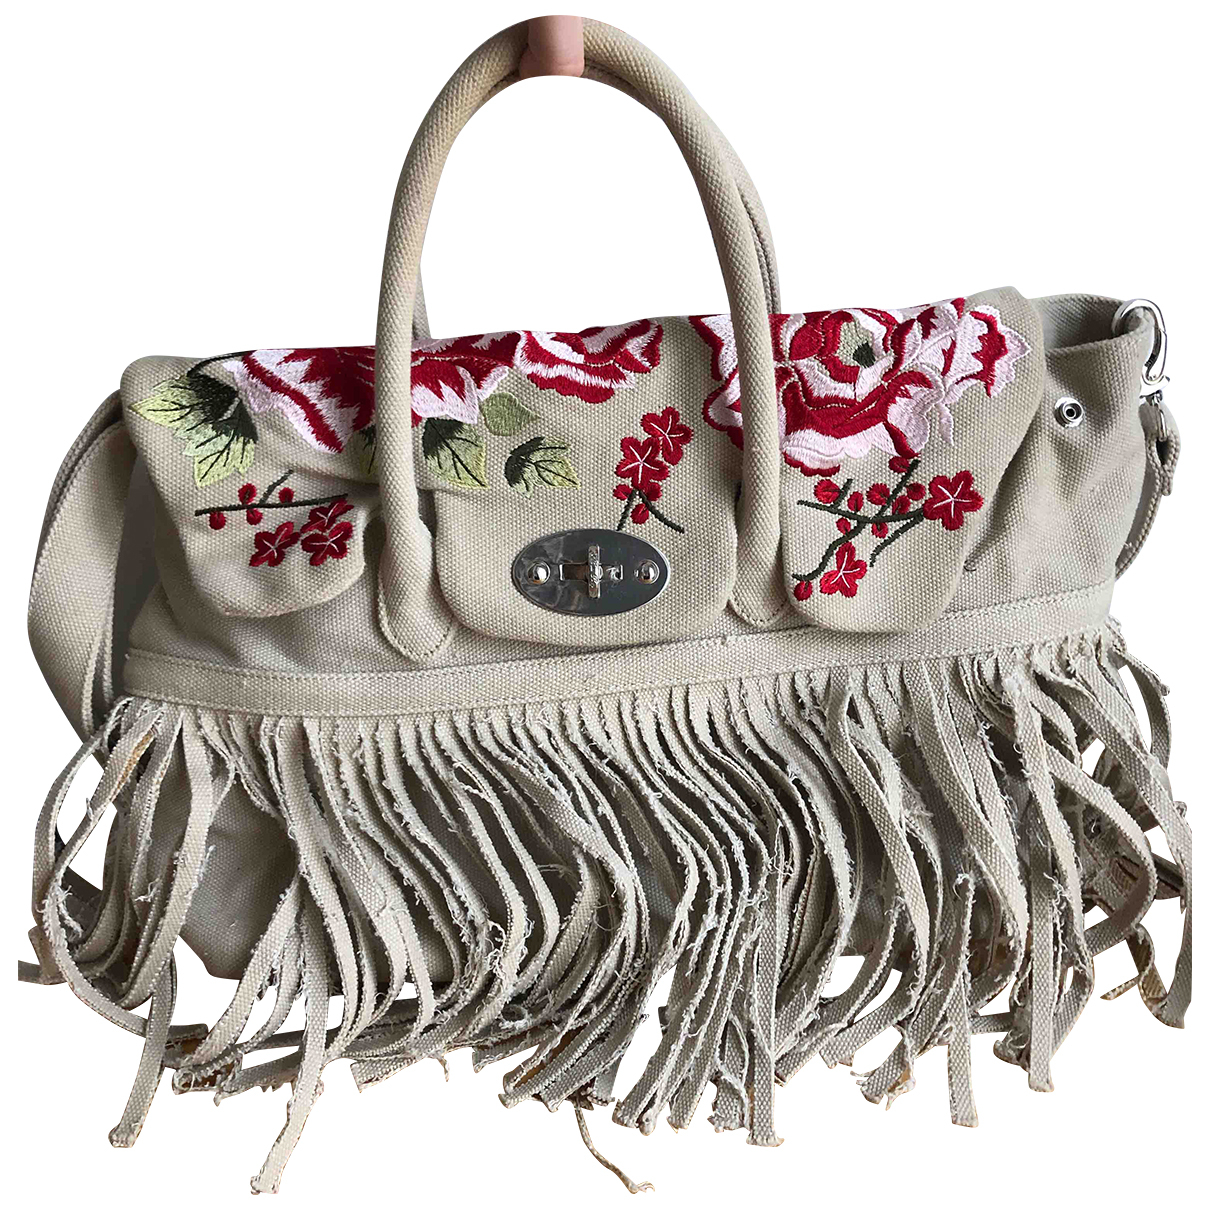 Mia Bag N Beige Cotton handbag for Women N